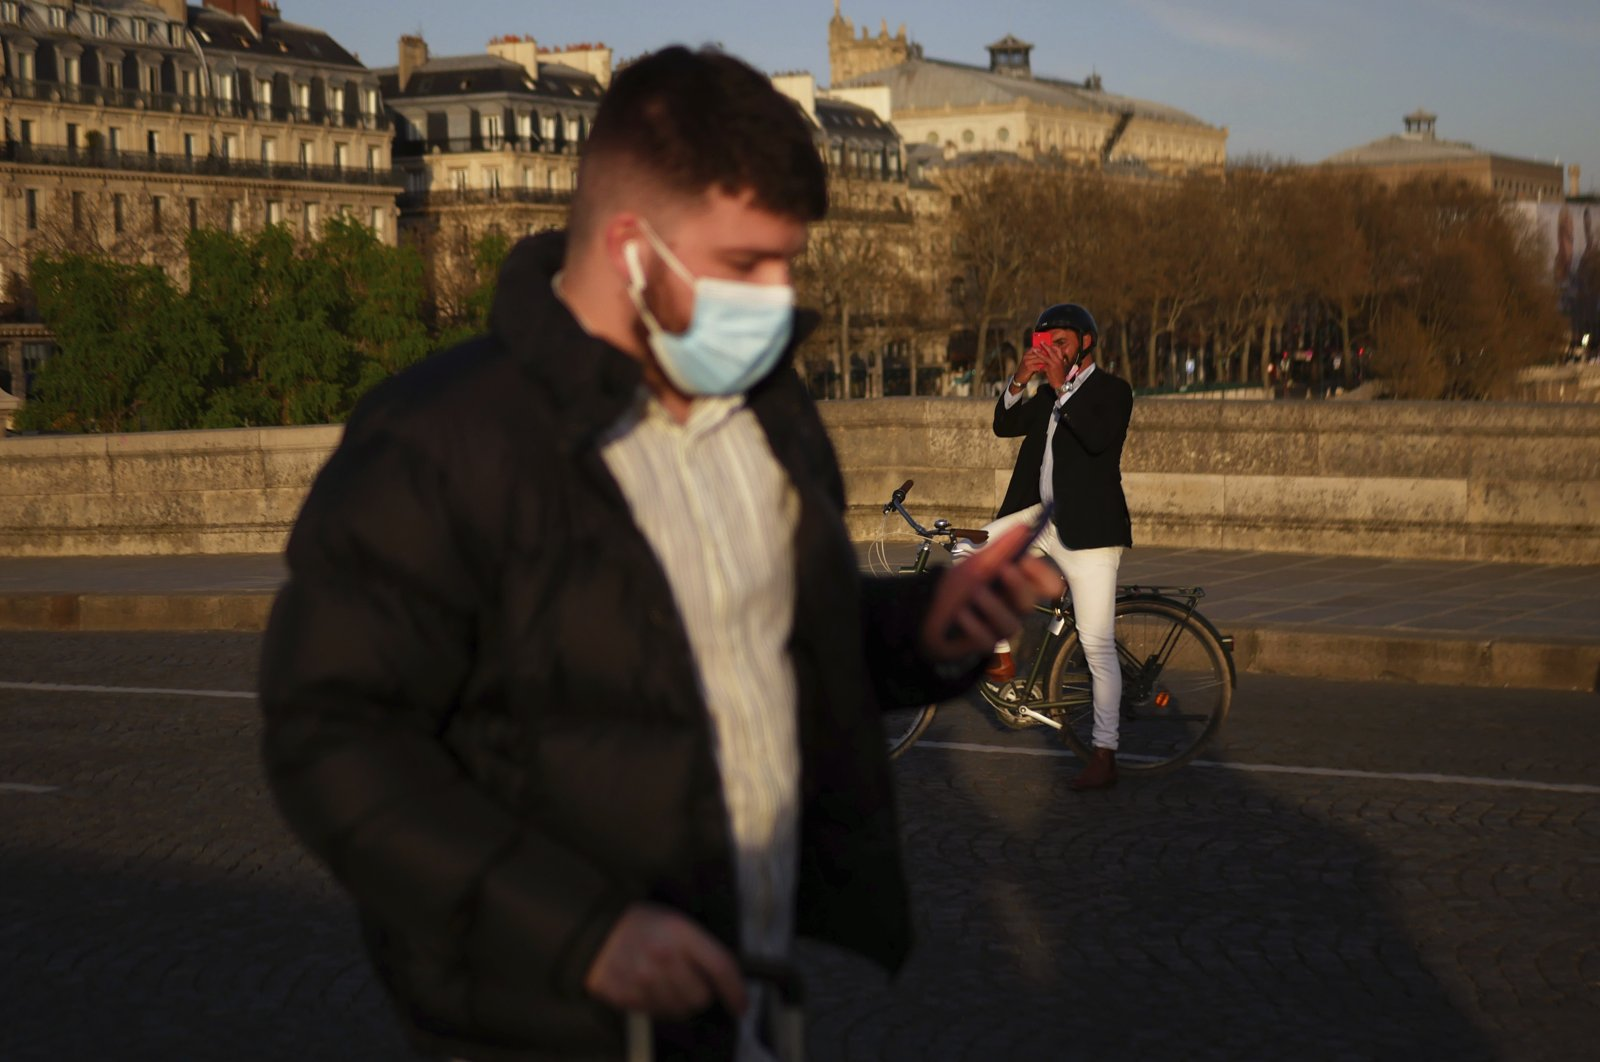 A man walks with a face mask to prevent the spread of the COVID-19 coronavirus, as a man takes a snapshot of the sunset, in Paris, March 29, 2021. (AP Photo)